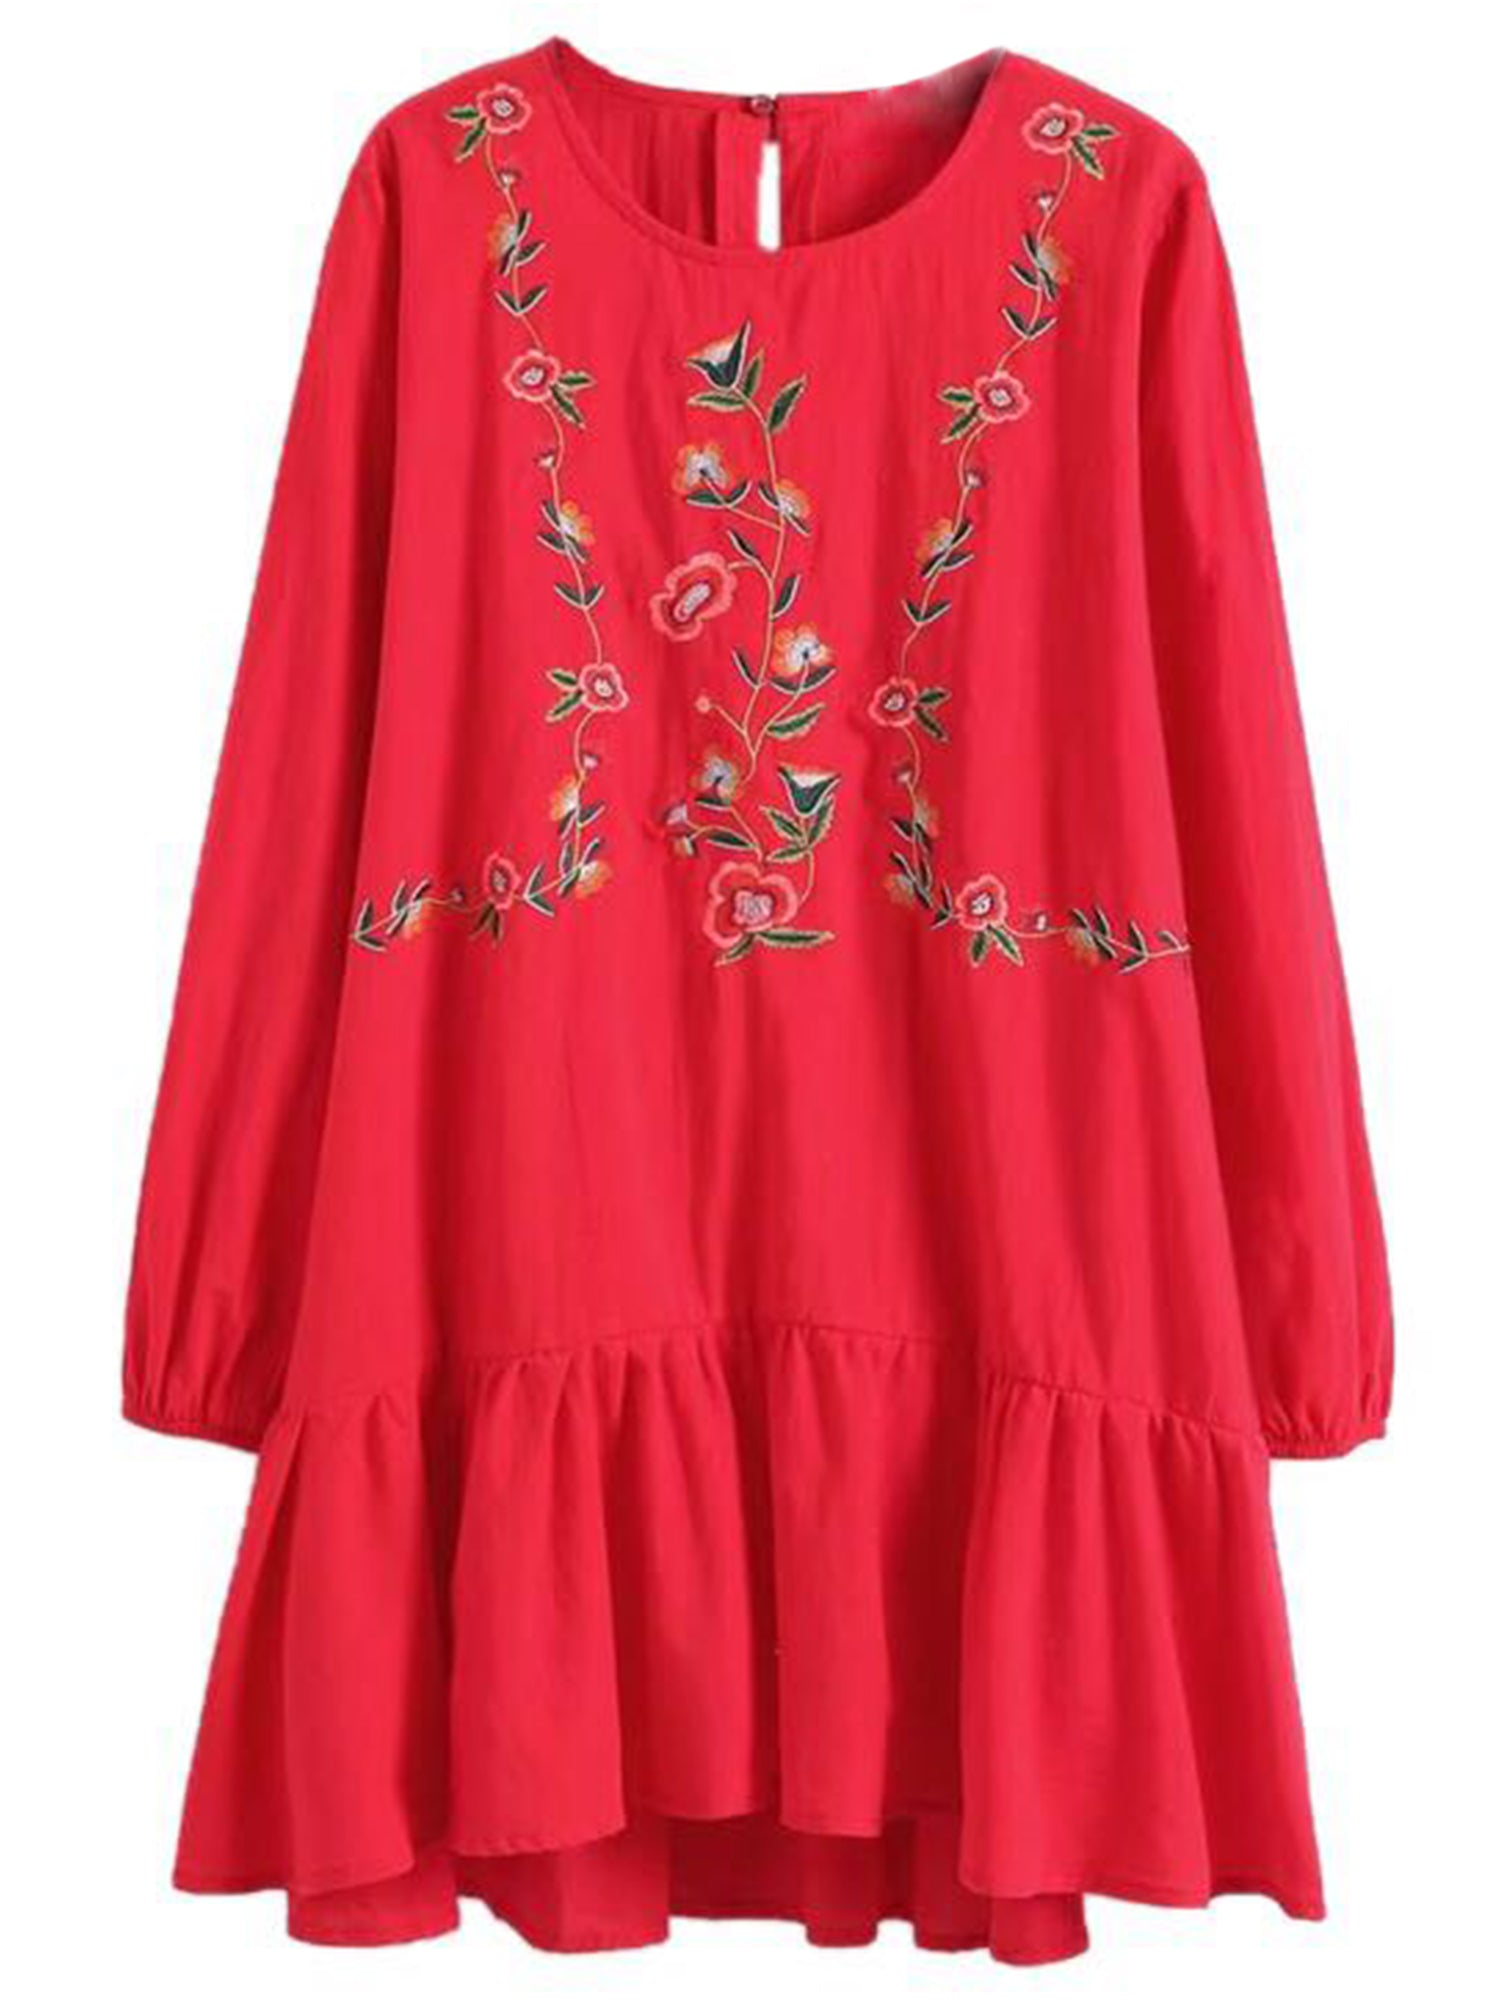 'Theresa' Handmade  Embroidered Peplum Tunic